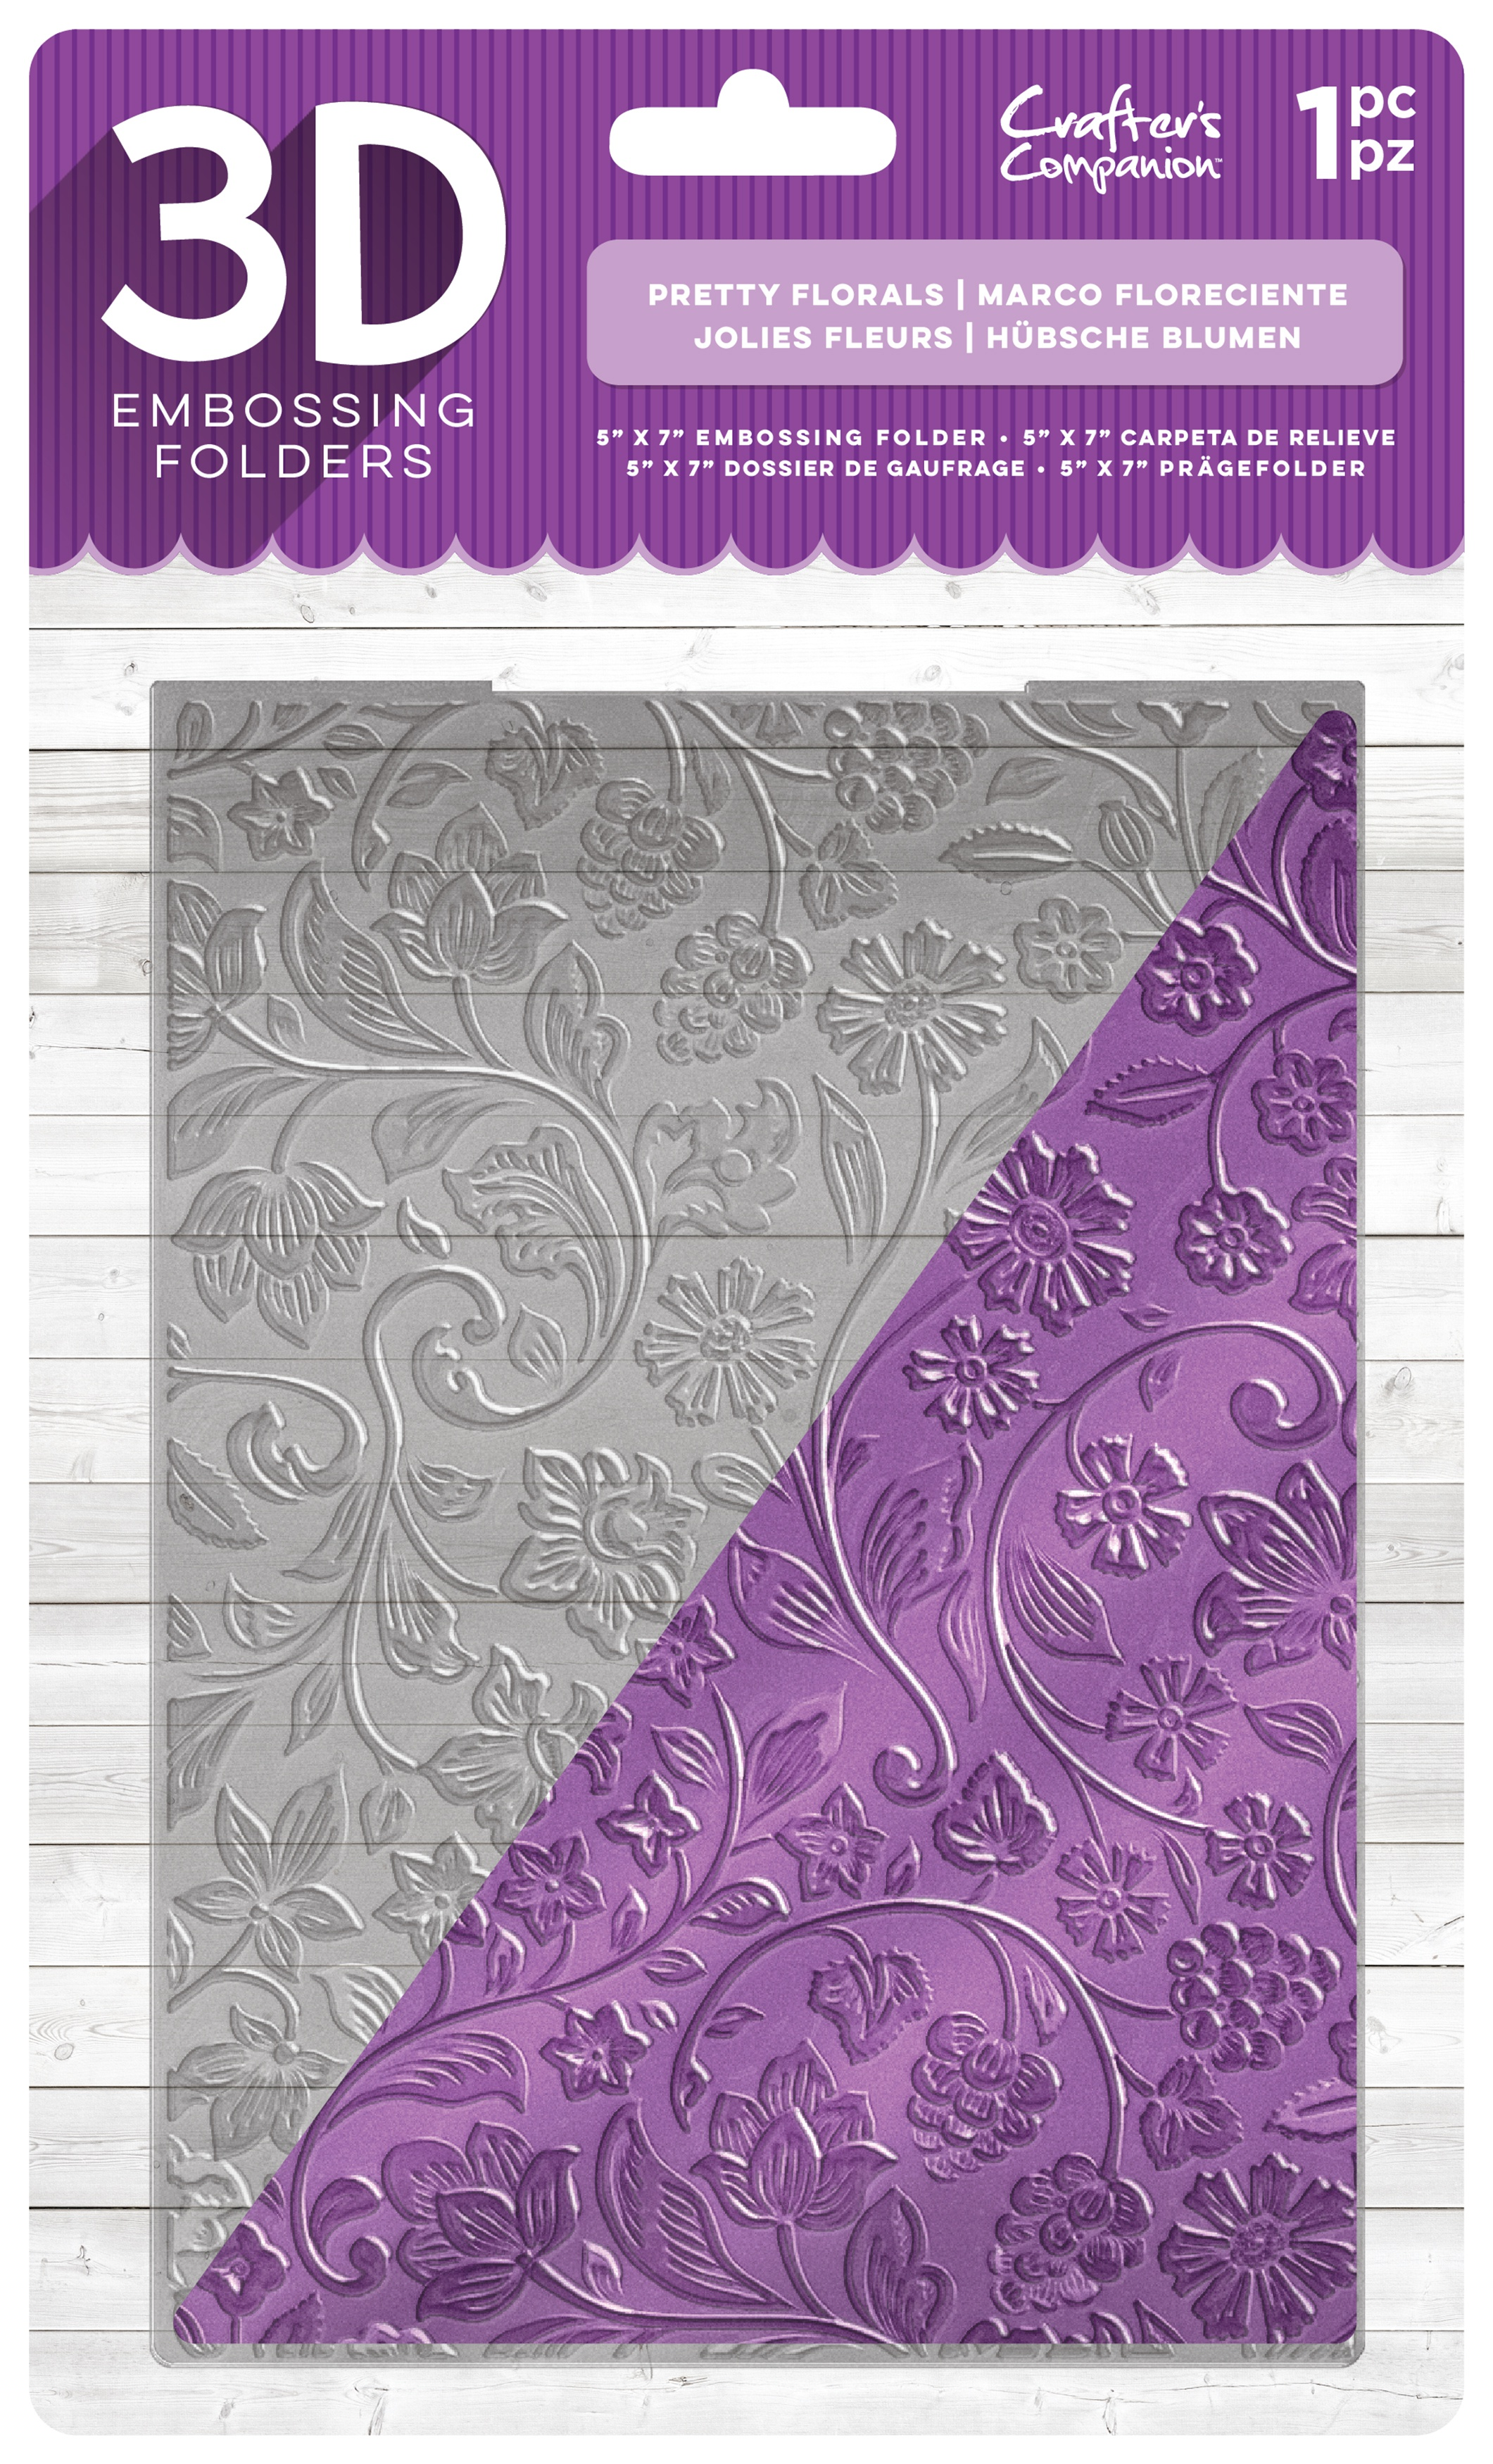 Crafter's Companion 3D Embossing Folder 5X7-Pretty Florals